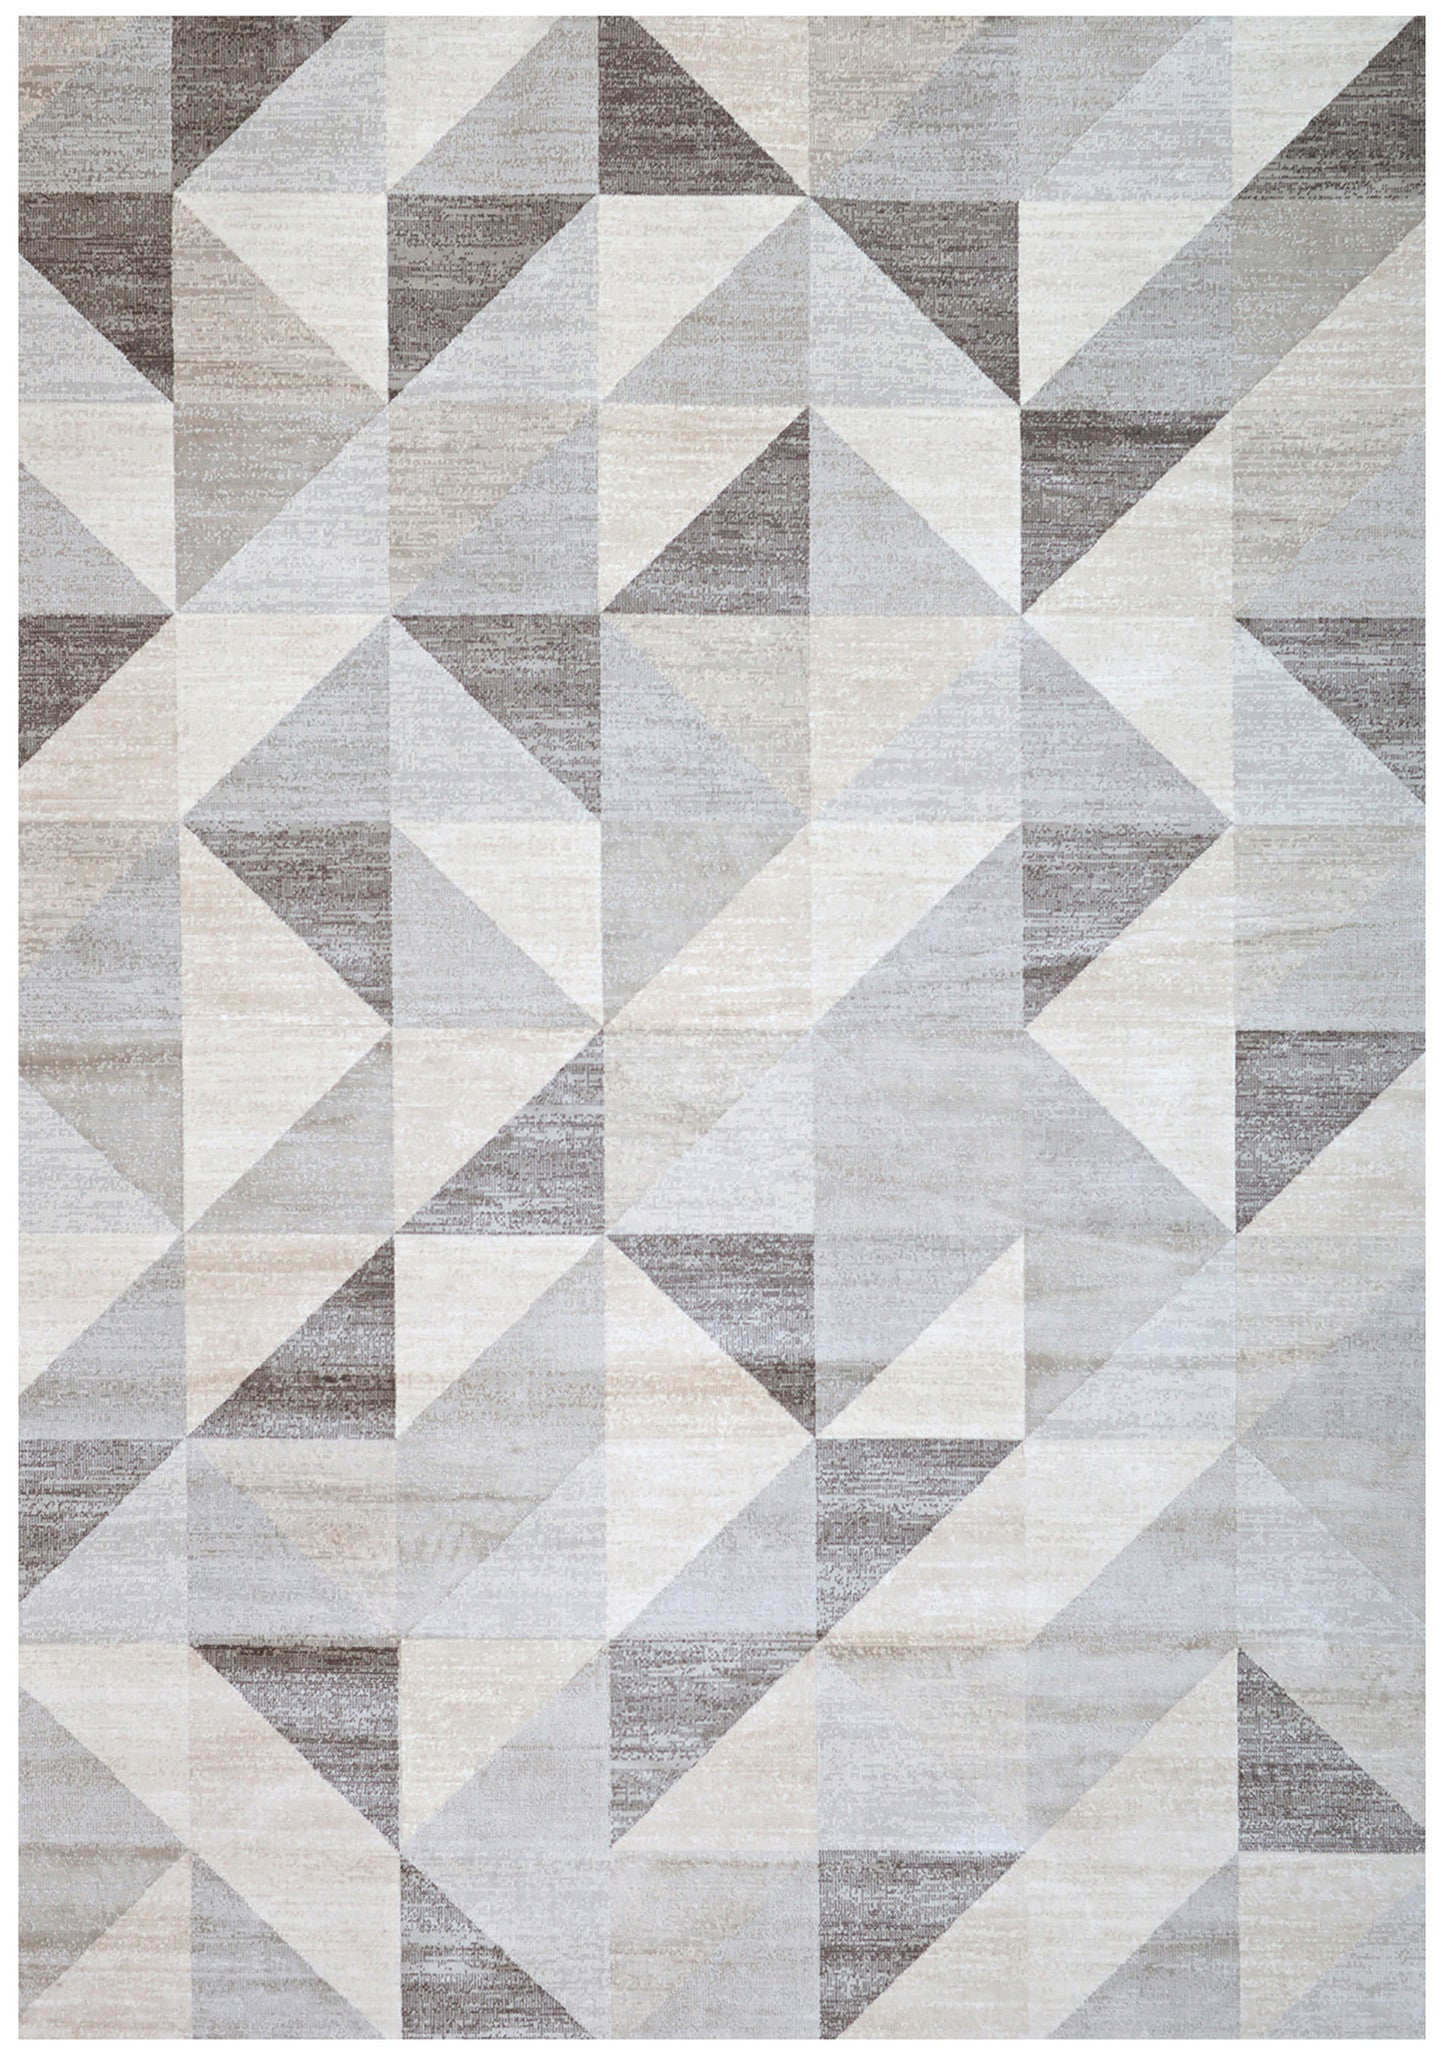 rugs  woodwaves - silver gray and white modern geometric triangle pattern rug